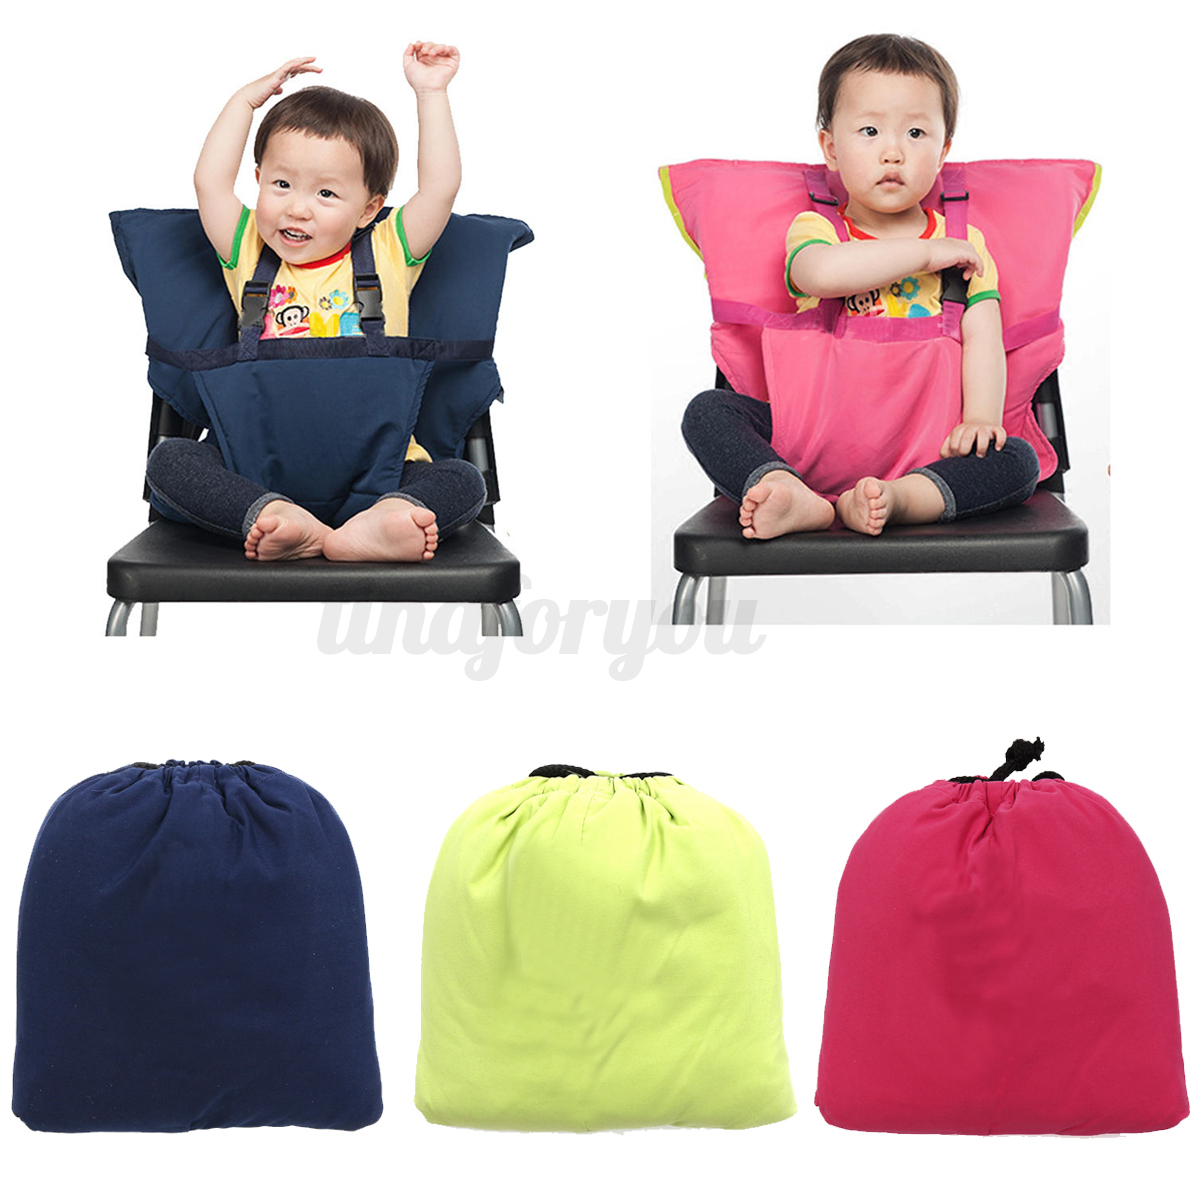 Portable Baby Infant Kids Seat High Chair Harness Safety Belt Fastener Ebay